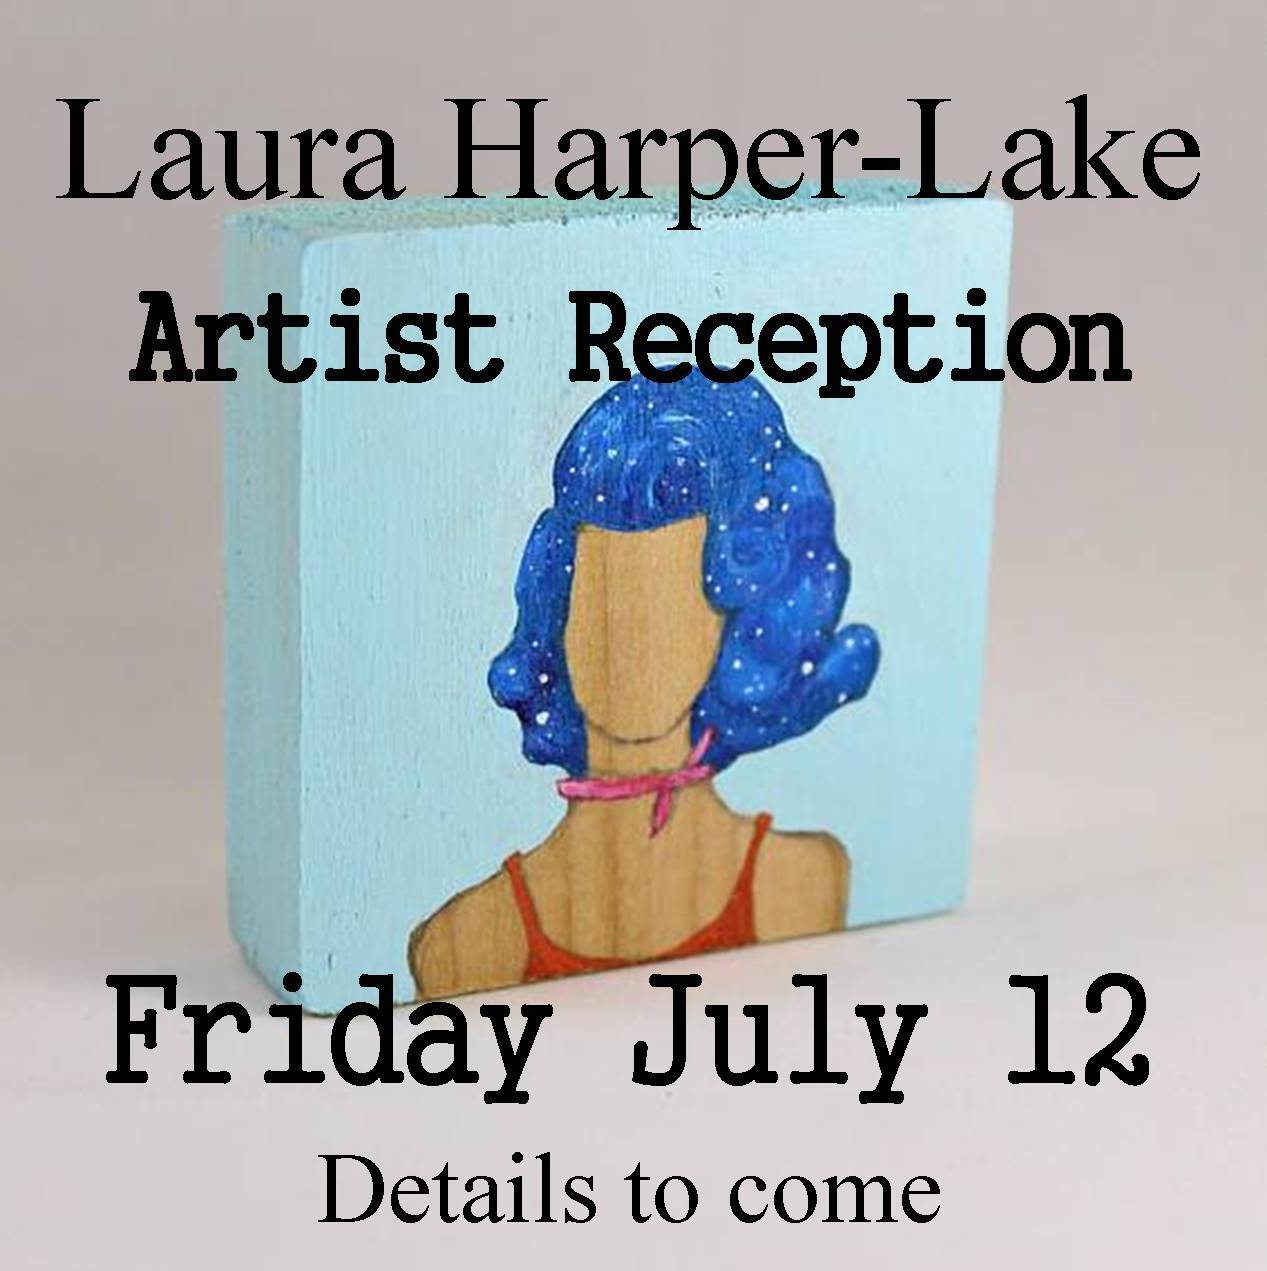 EVENT: JULY 12, LAURA HARPER-LAKE ARTIST RECEPTION